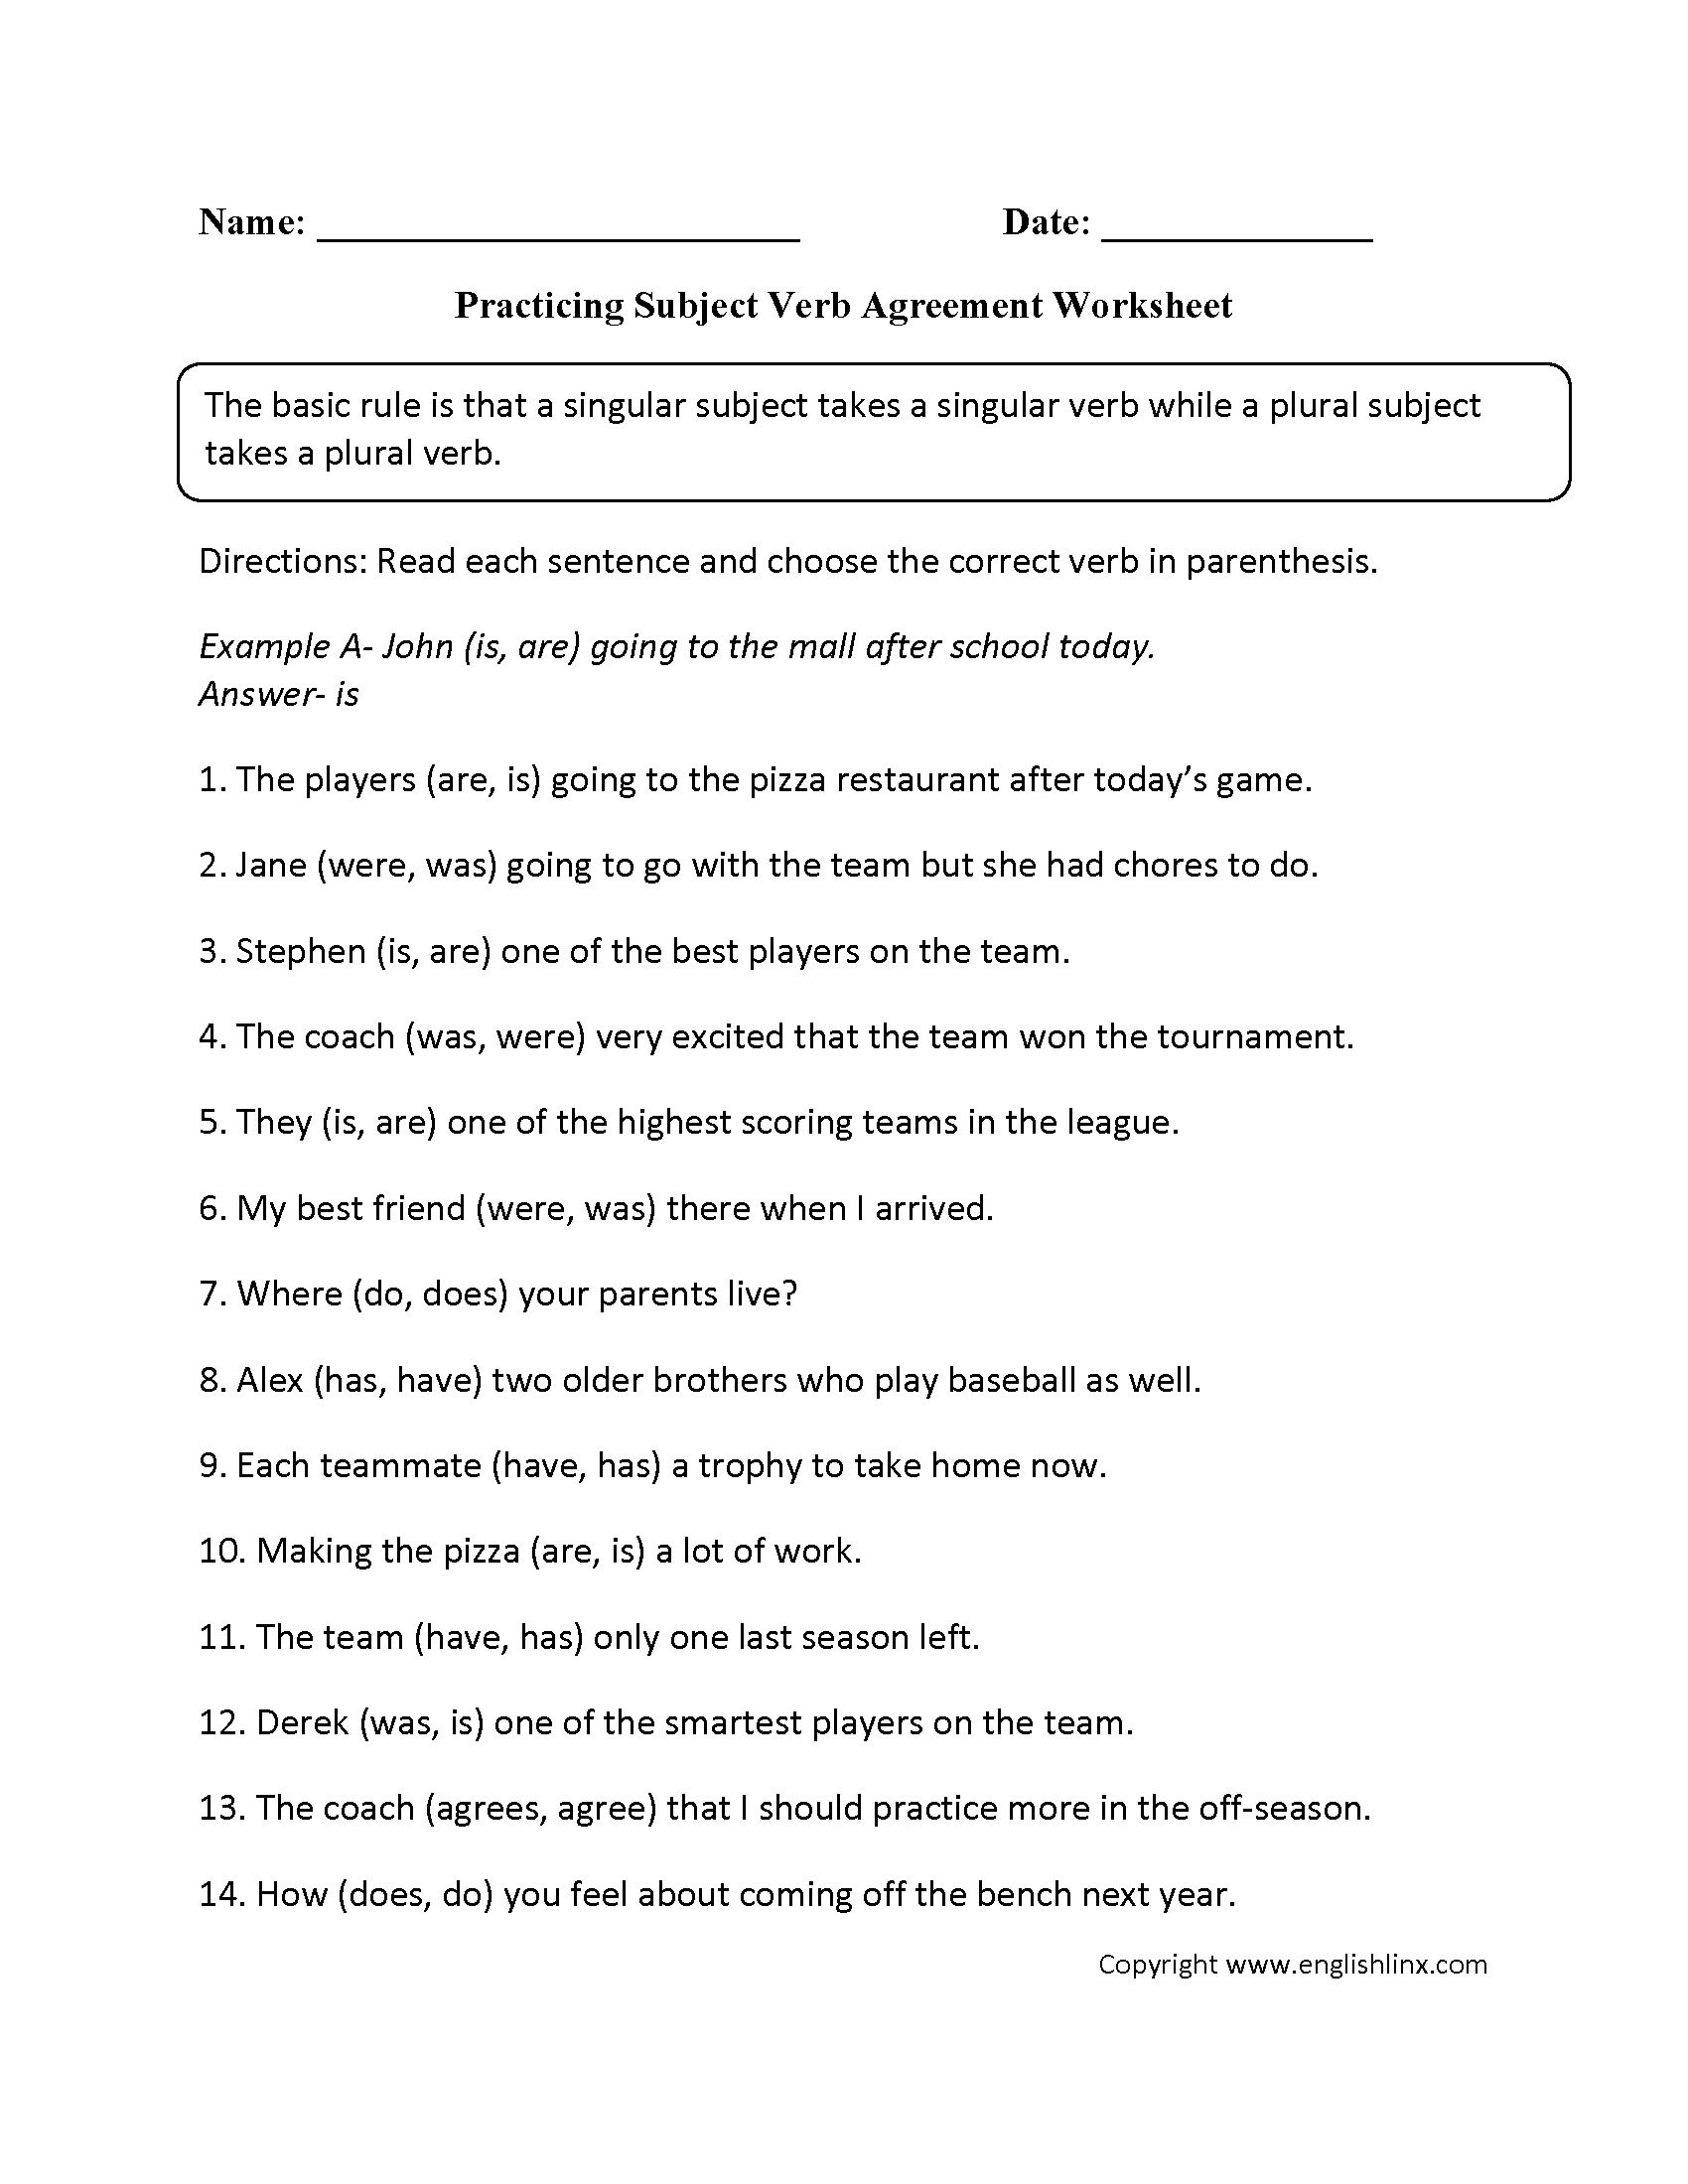 Worksheets Subject Verb Agreement Worksheets 3rd Grade word usage worksheets subject verb agreement practicing worksheet